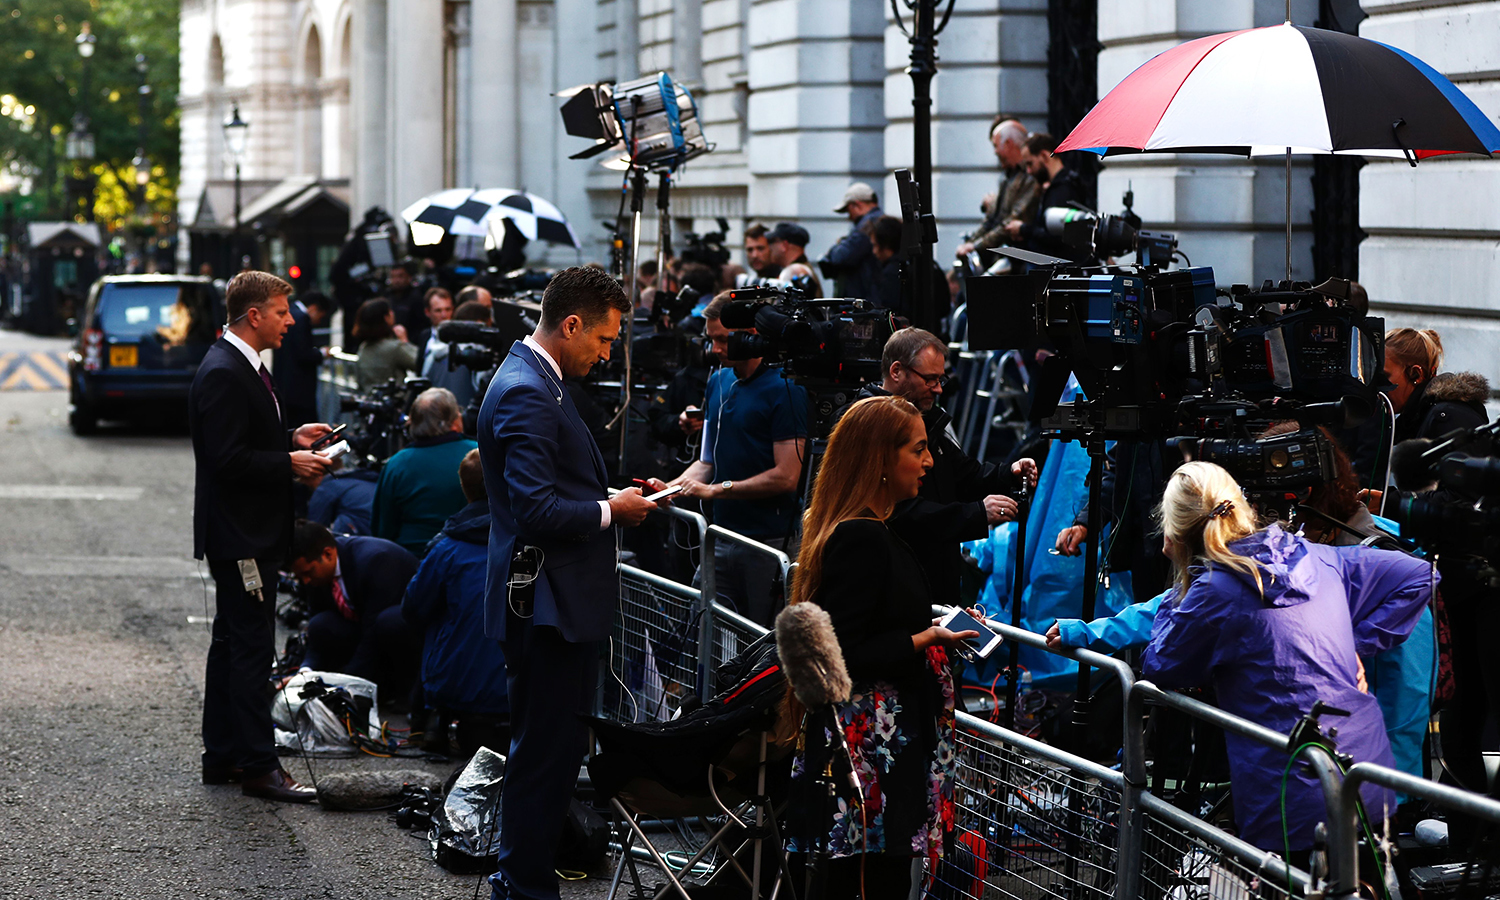 Members of the press wait outside Downing street in central London on June 23, 2016 following the EU referendum. Britain has voted to leave the European Union by 52 percent to 48 percent, the BBC reported on Friday, after nearly all the results had been counted. / AFP PHOTO / ODD ANDERSEN